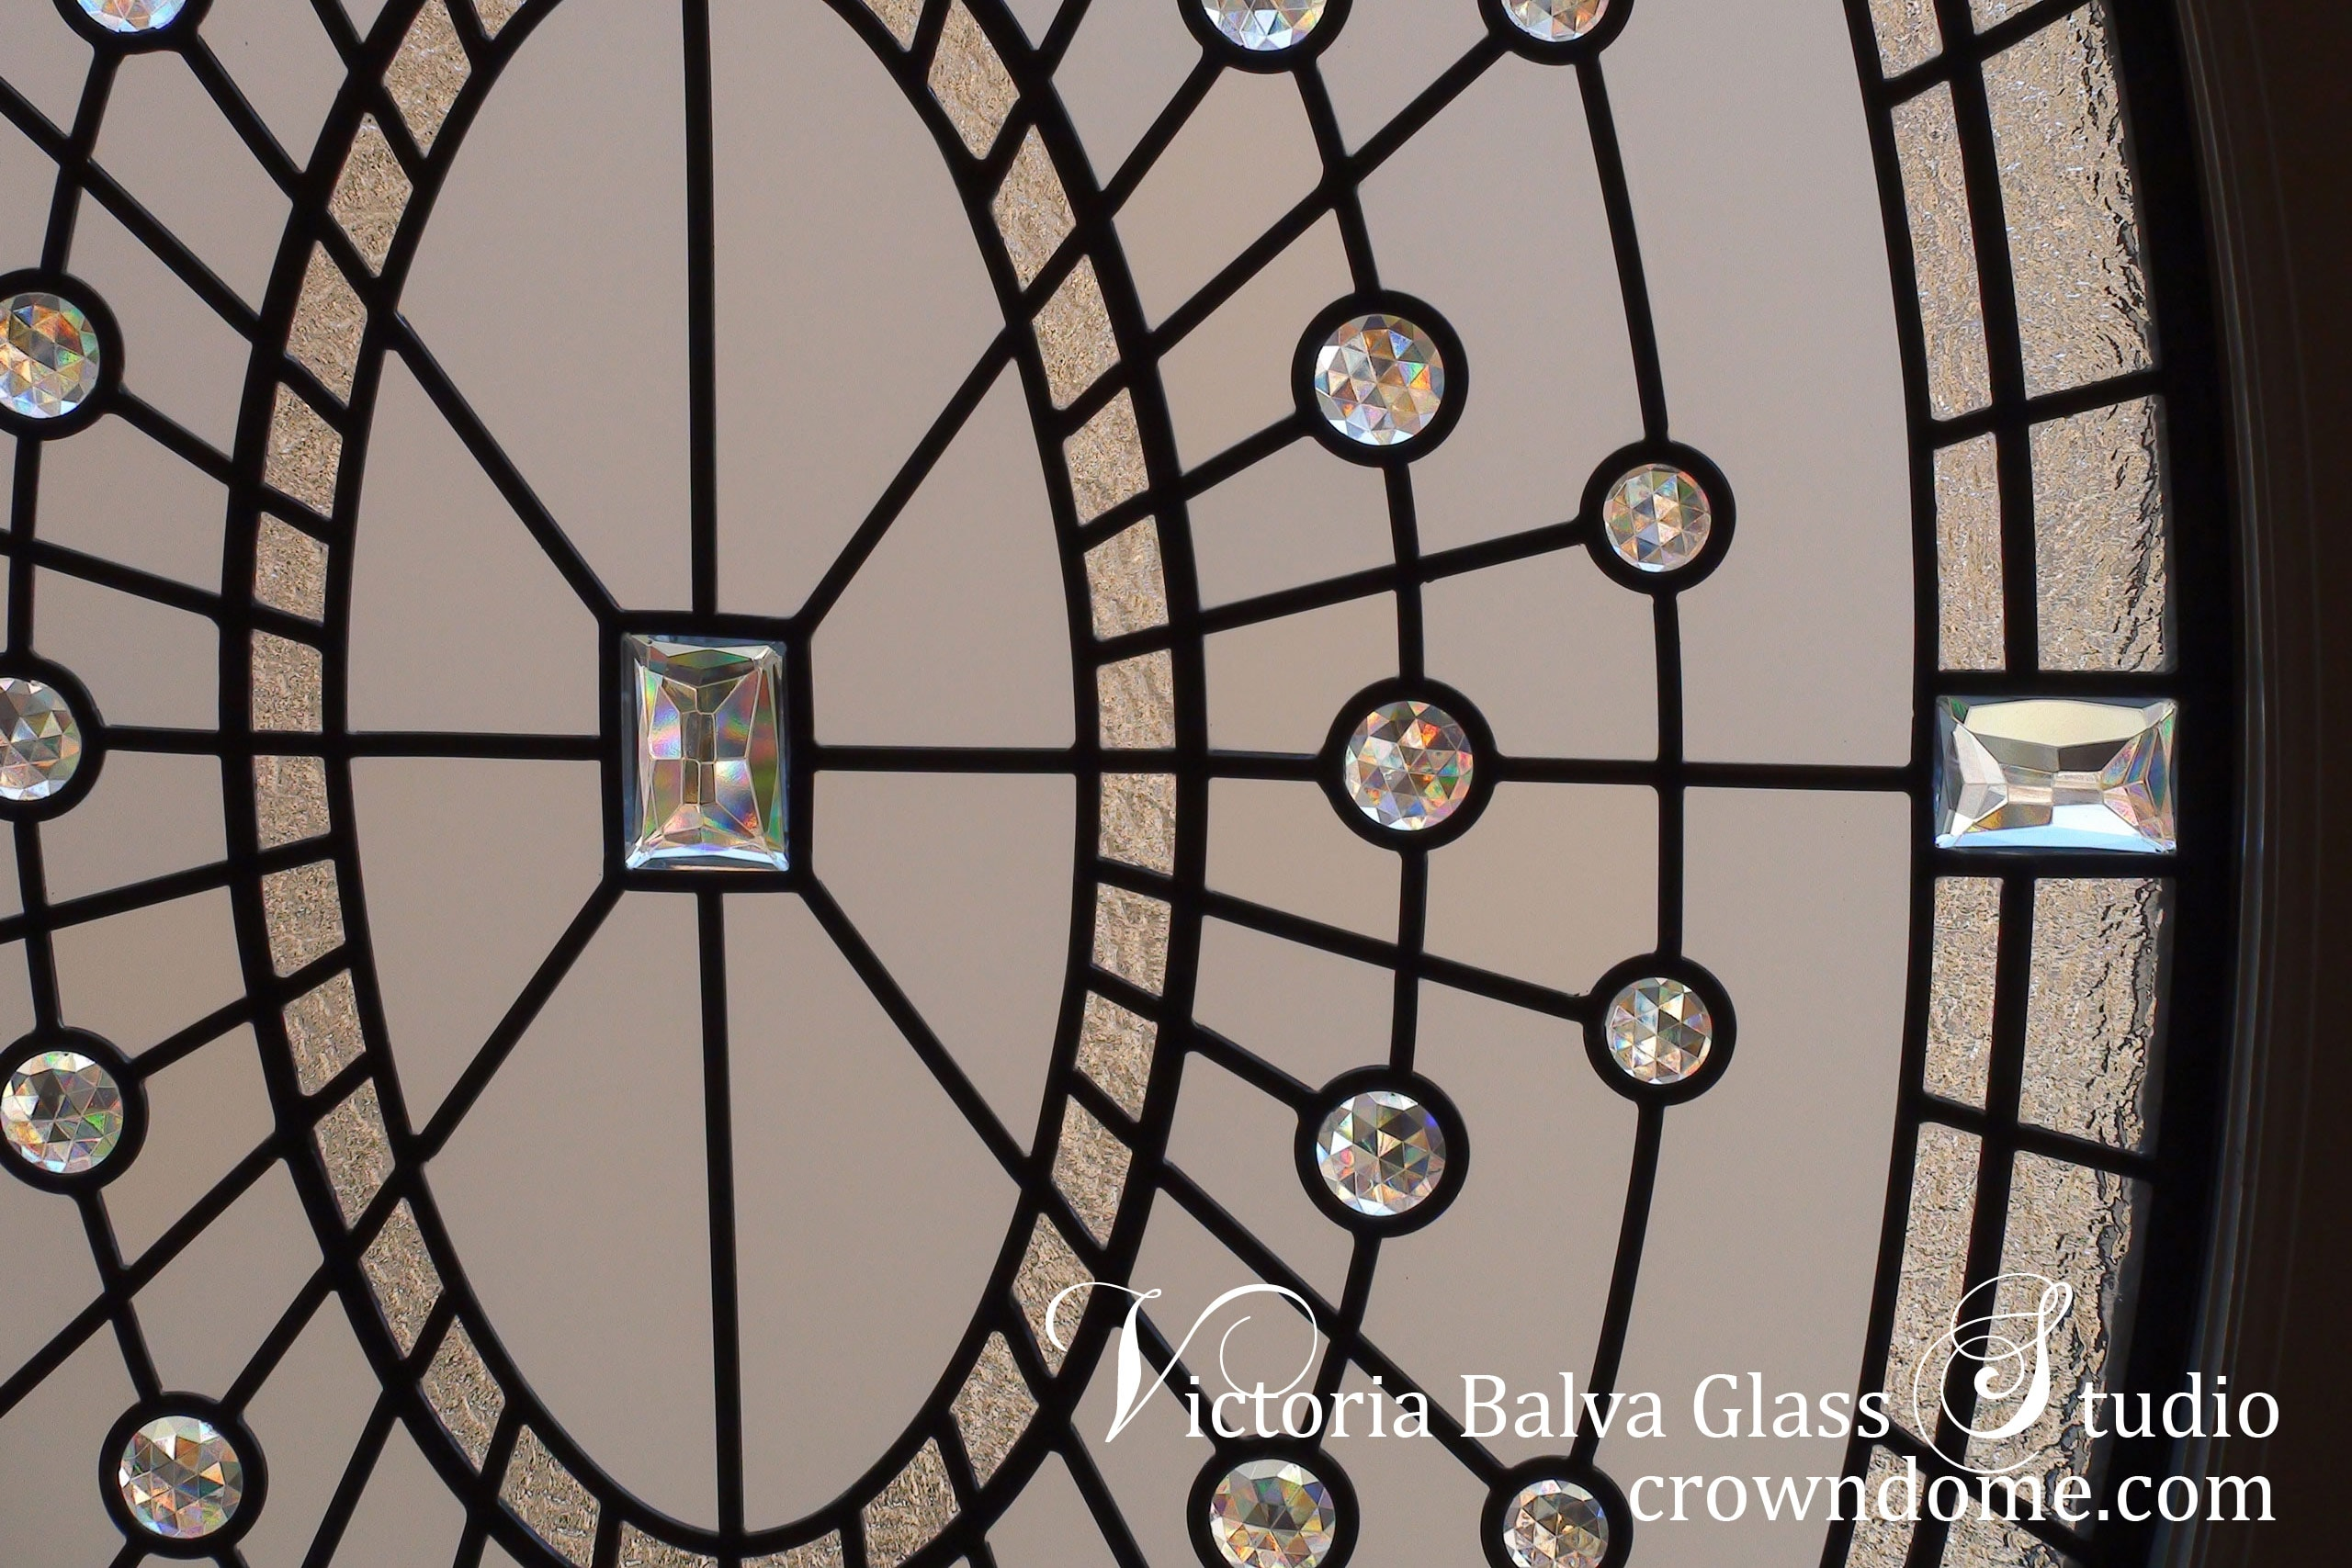 Large leaded glass oval window w monochromatic clear glass, accent jewels, and various clear textured glasses to create classically modern accent glass window. Leaded glass design by architectural glass artist Victoria Balva